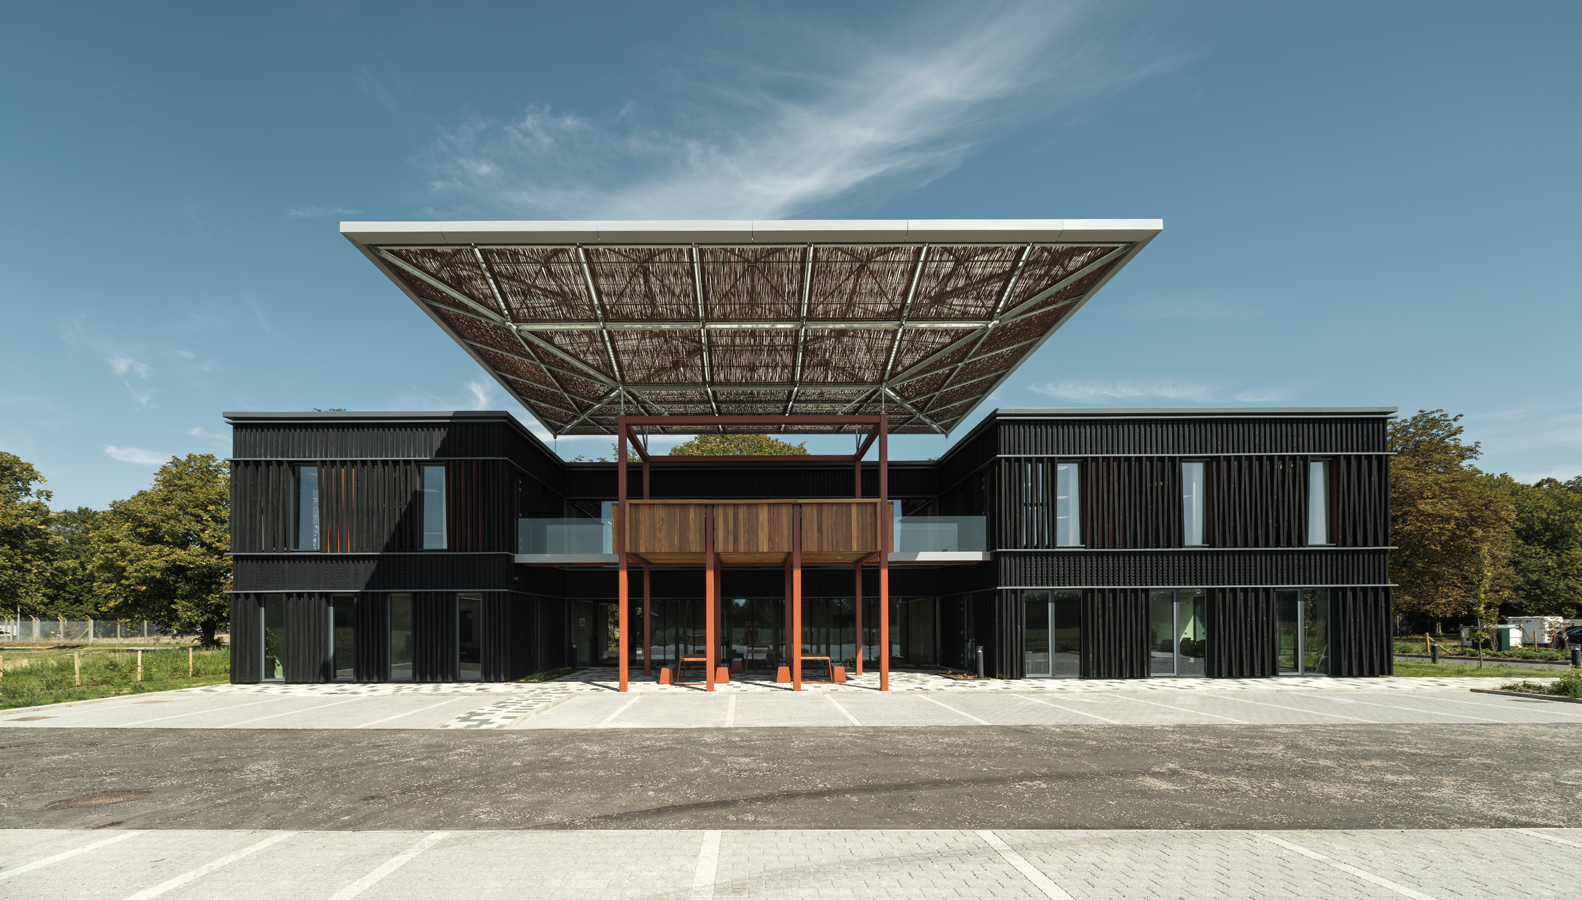 Proctor & Matthews designs a new flagship office for Homes England, championing offsite construction and local craftsmanship